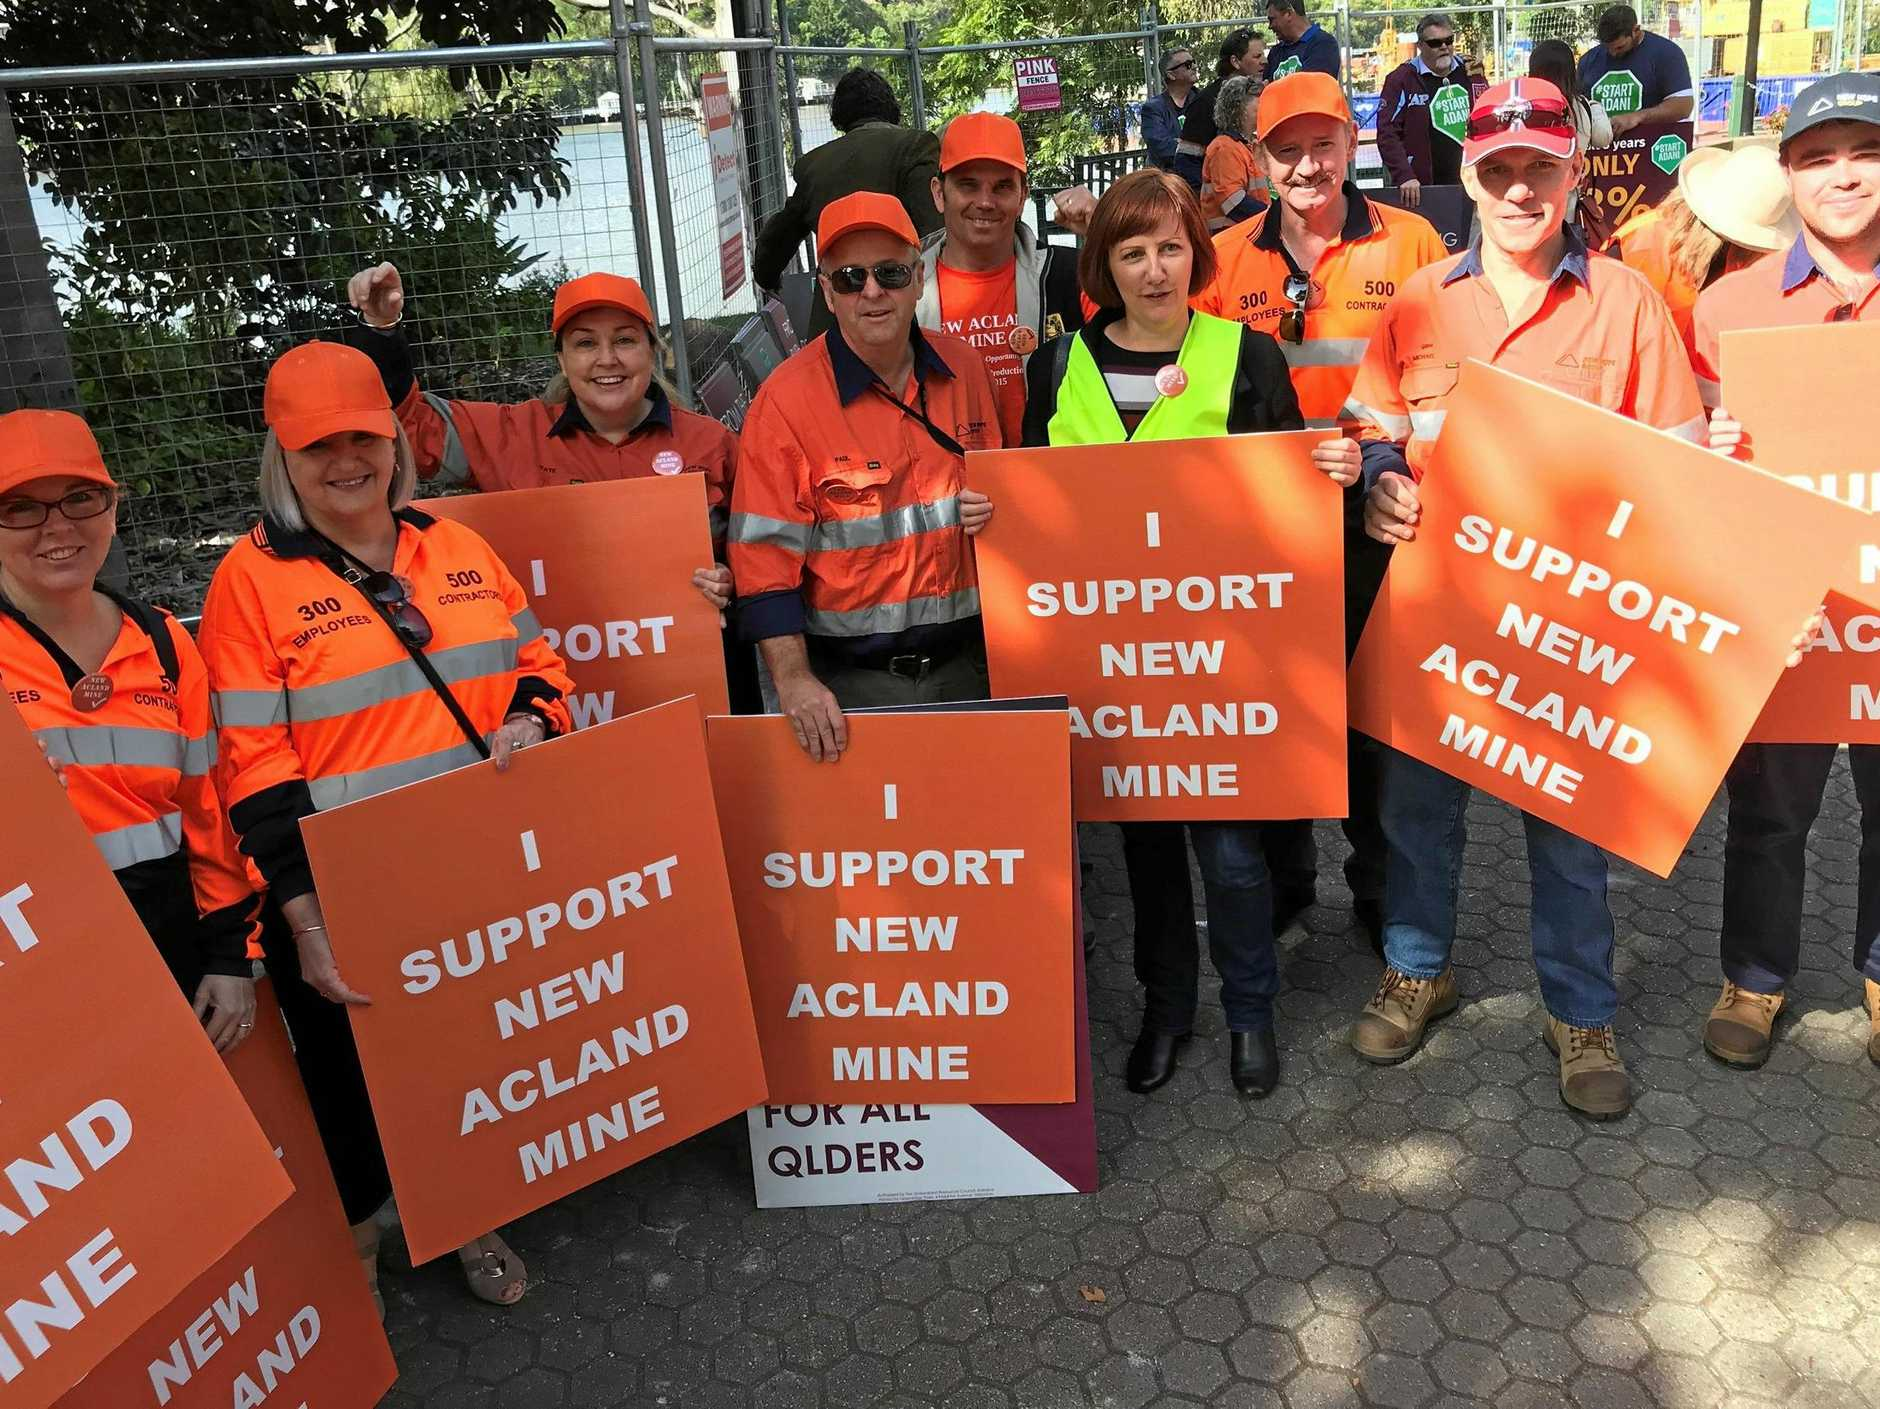 Toowoomba and Surat Basin Enterprise CEO Ali Davenport (in yellow) is flanked by supporters of New Acland Mine at the Queensland Day rally in Brisbane.